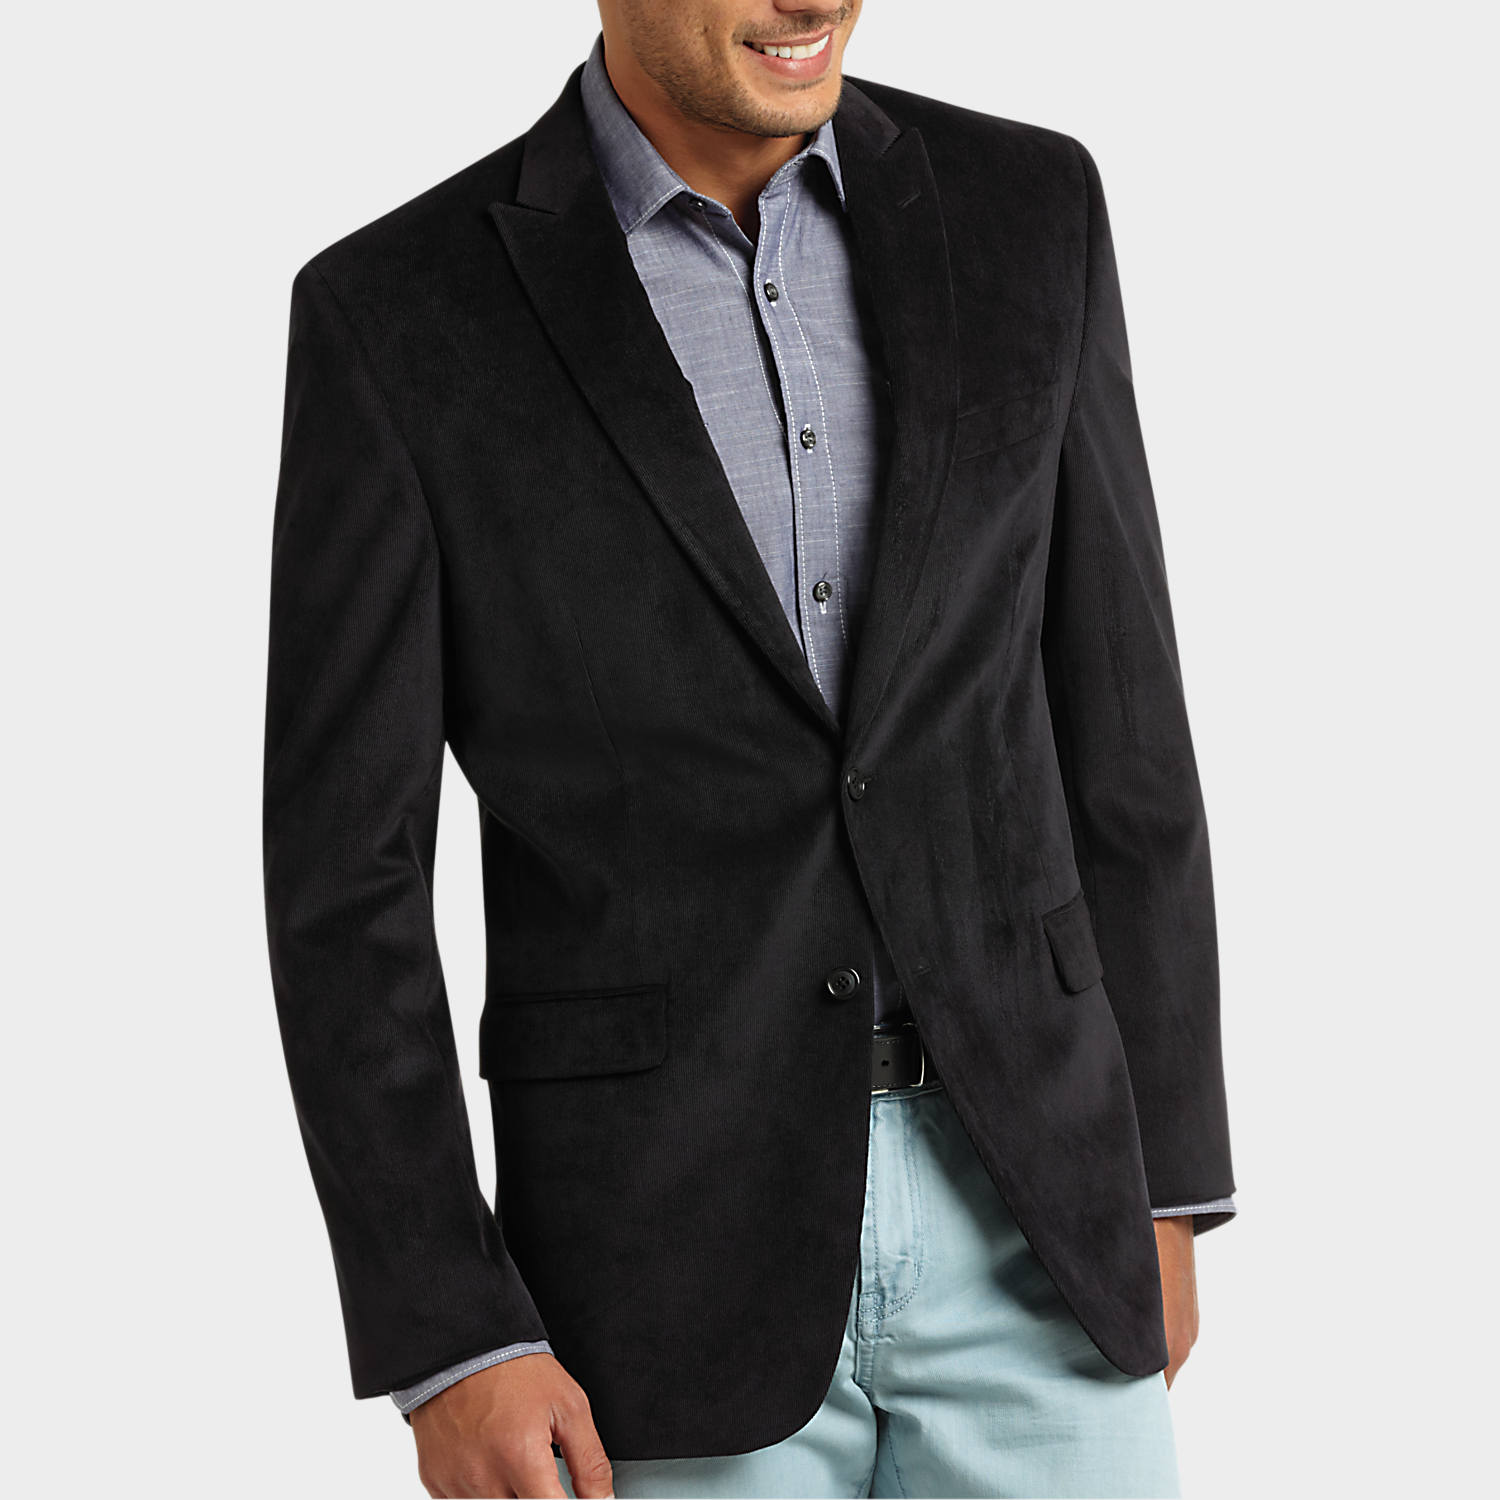 Calvin Klein Black Corduroy Slim Fit Sport Coat - Men's Sport ...